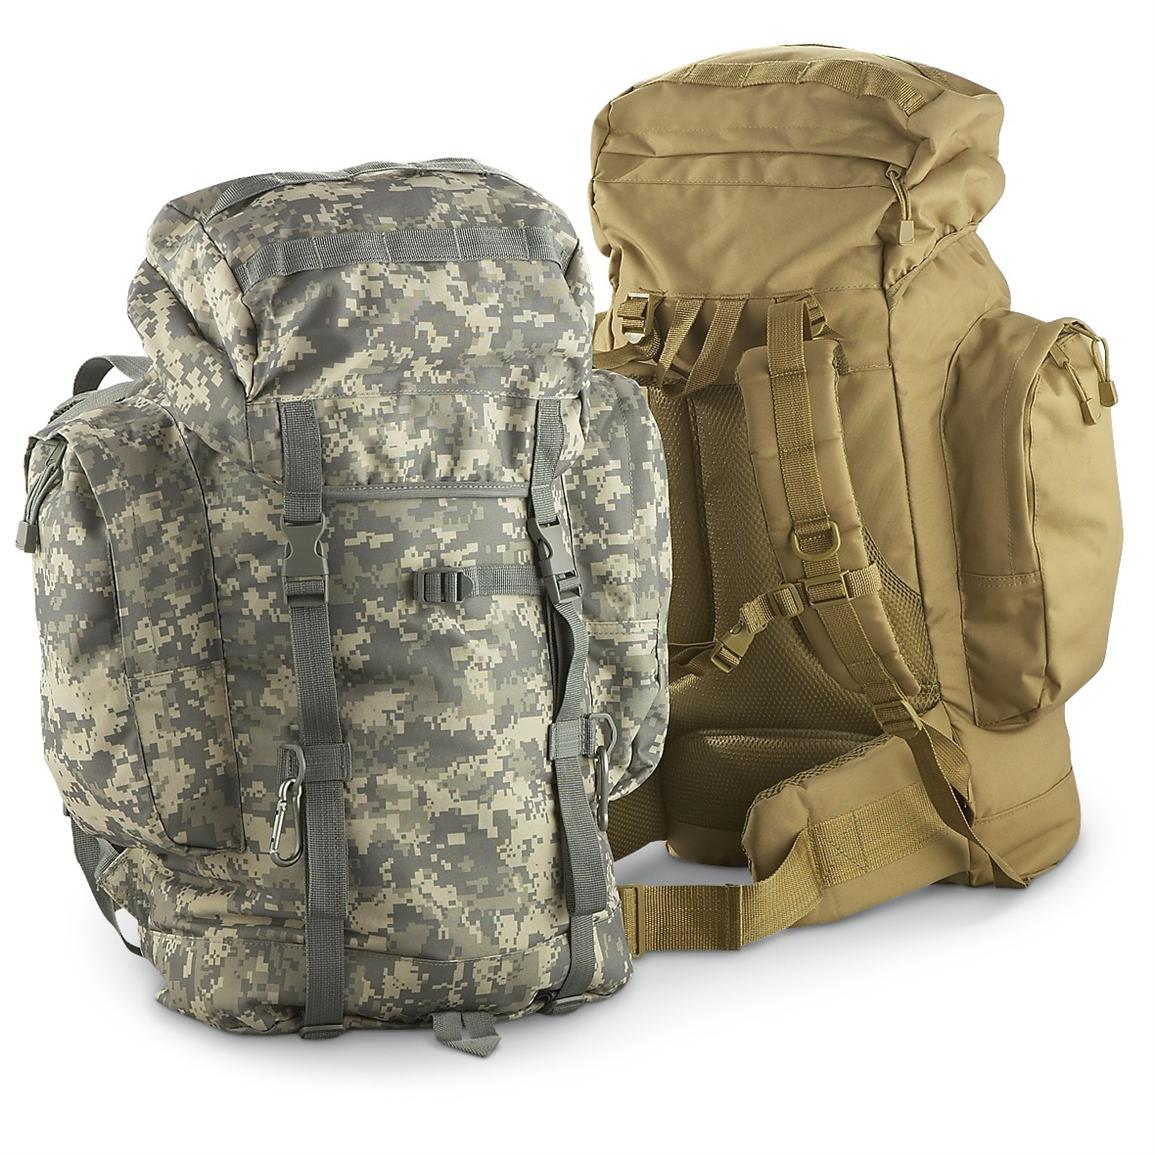 Fox Tactical® Military Surplus 45L Pack, Army Digital / Coyote • 3,900-cu. in. capacity